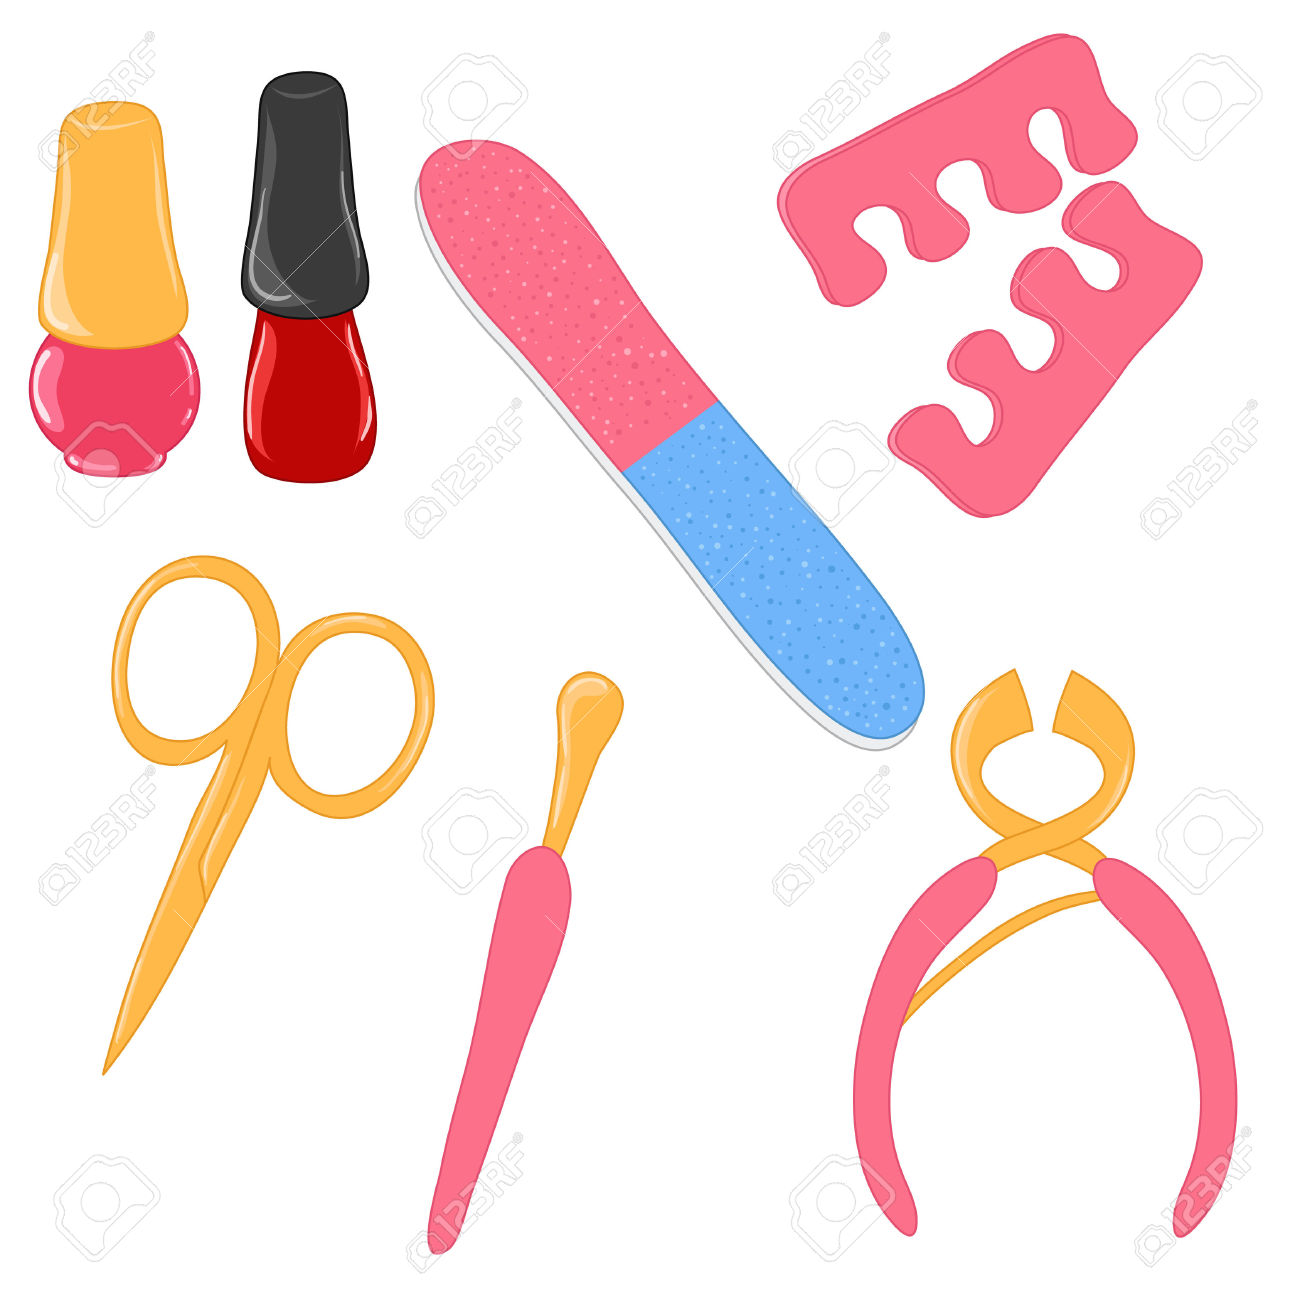 Caring clipart nail. Collection of free download